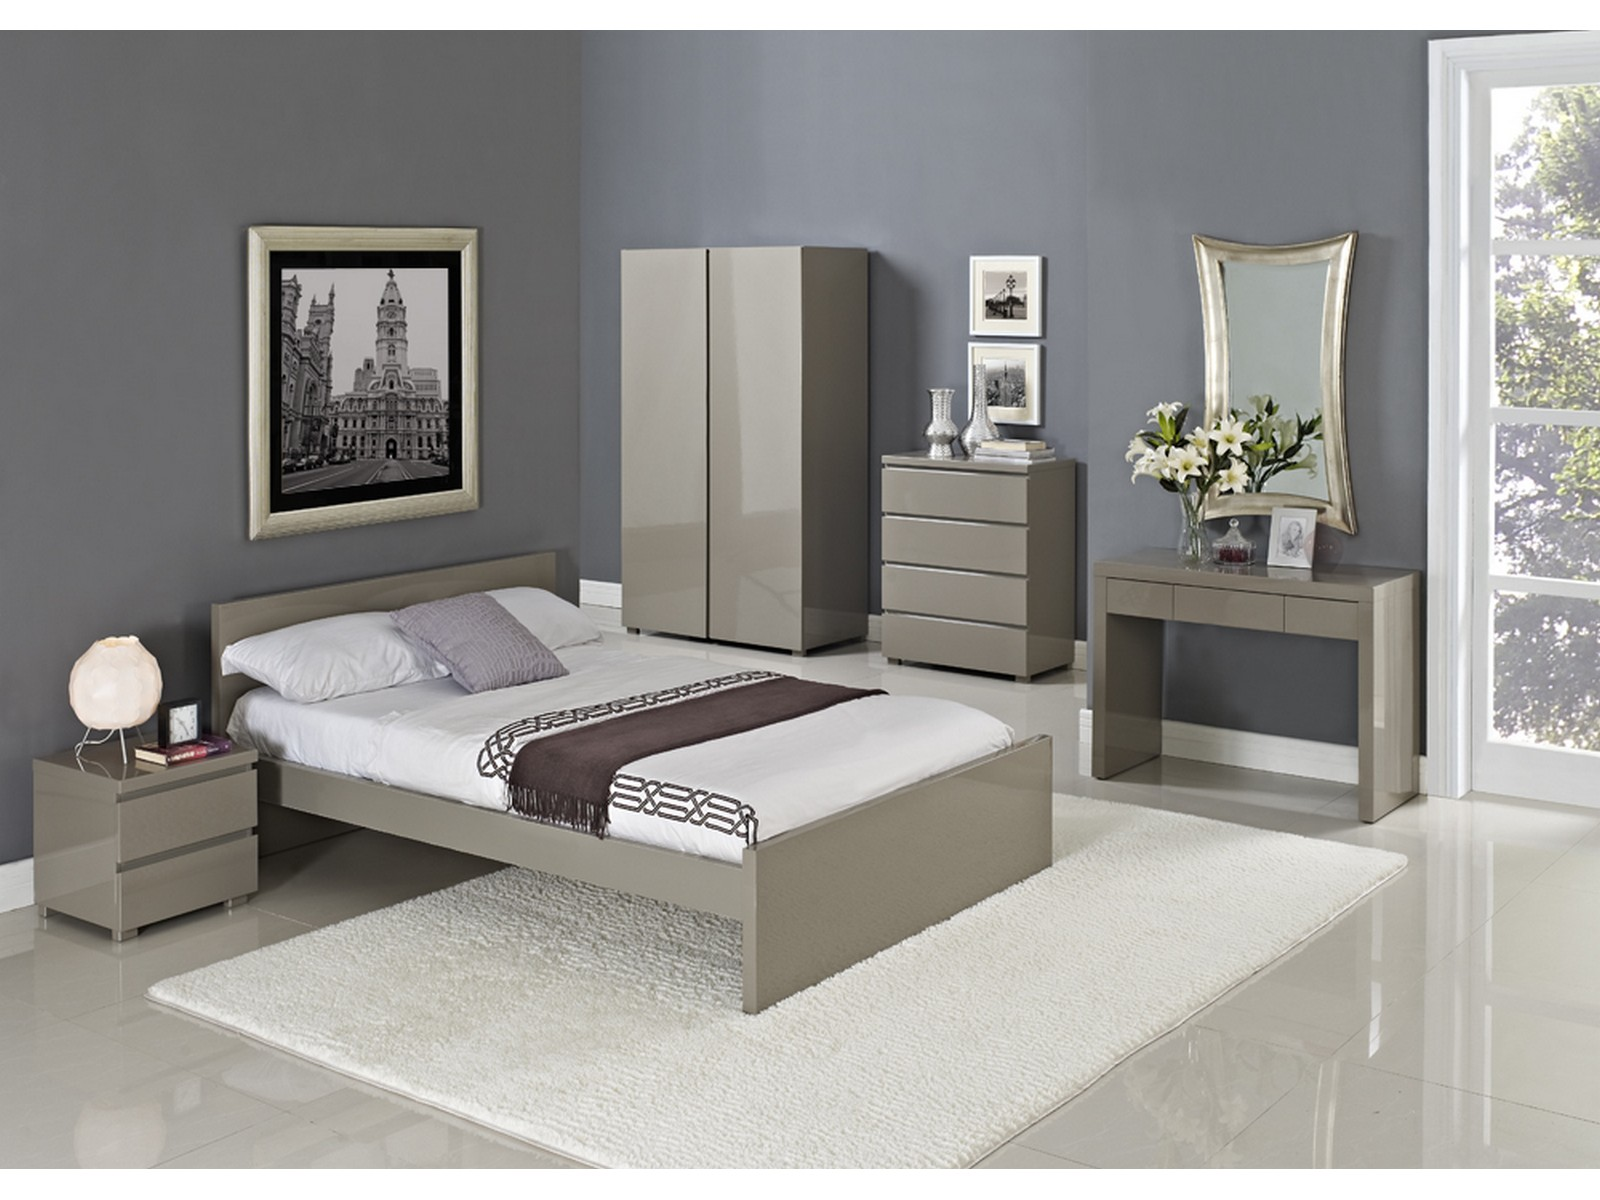 details about puro high gloss bedroom range beds wardrobe chest stone cream 3ft 4ft6 5ft